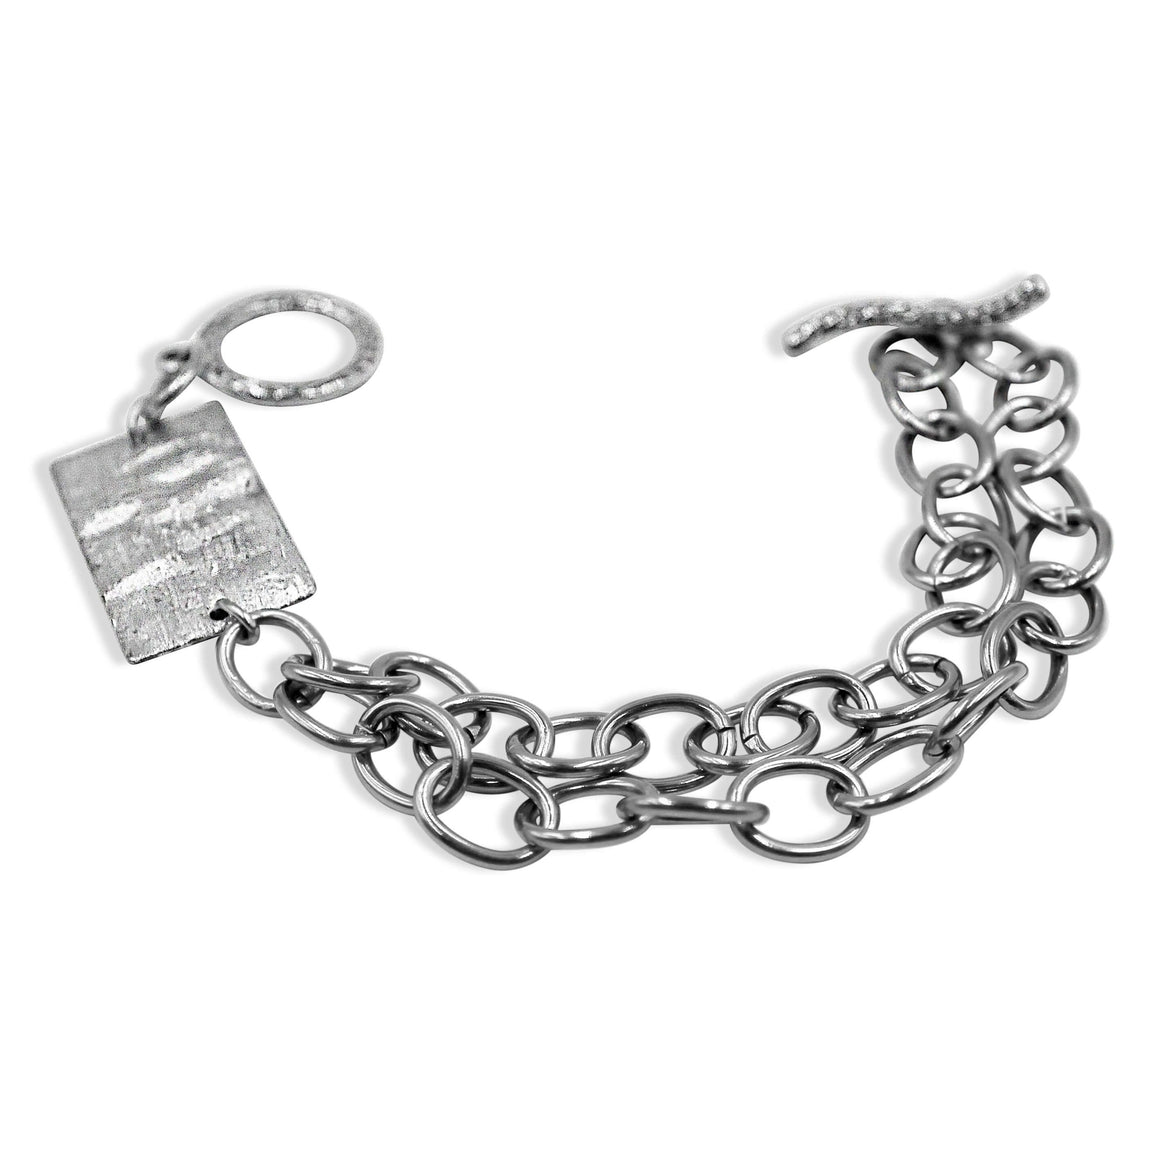 Stainless Steel Rectangle Silver Bracelet- Creative Jewelry by Marcia